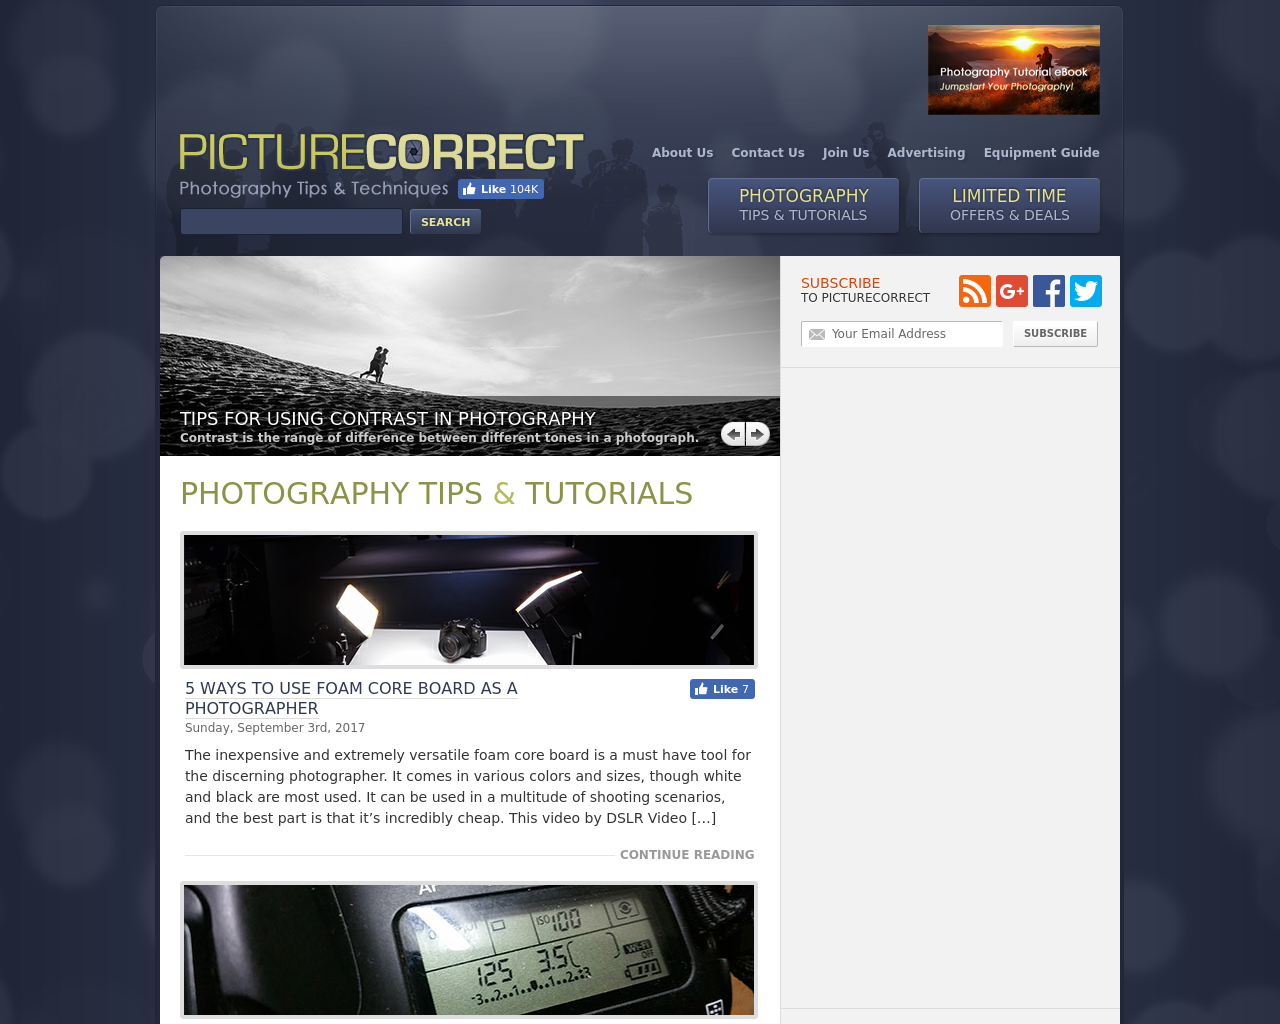 PictureCorrect-Advertising-Reviews-Pricing